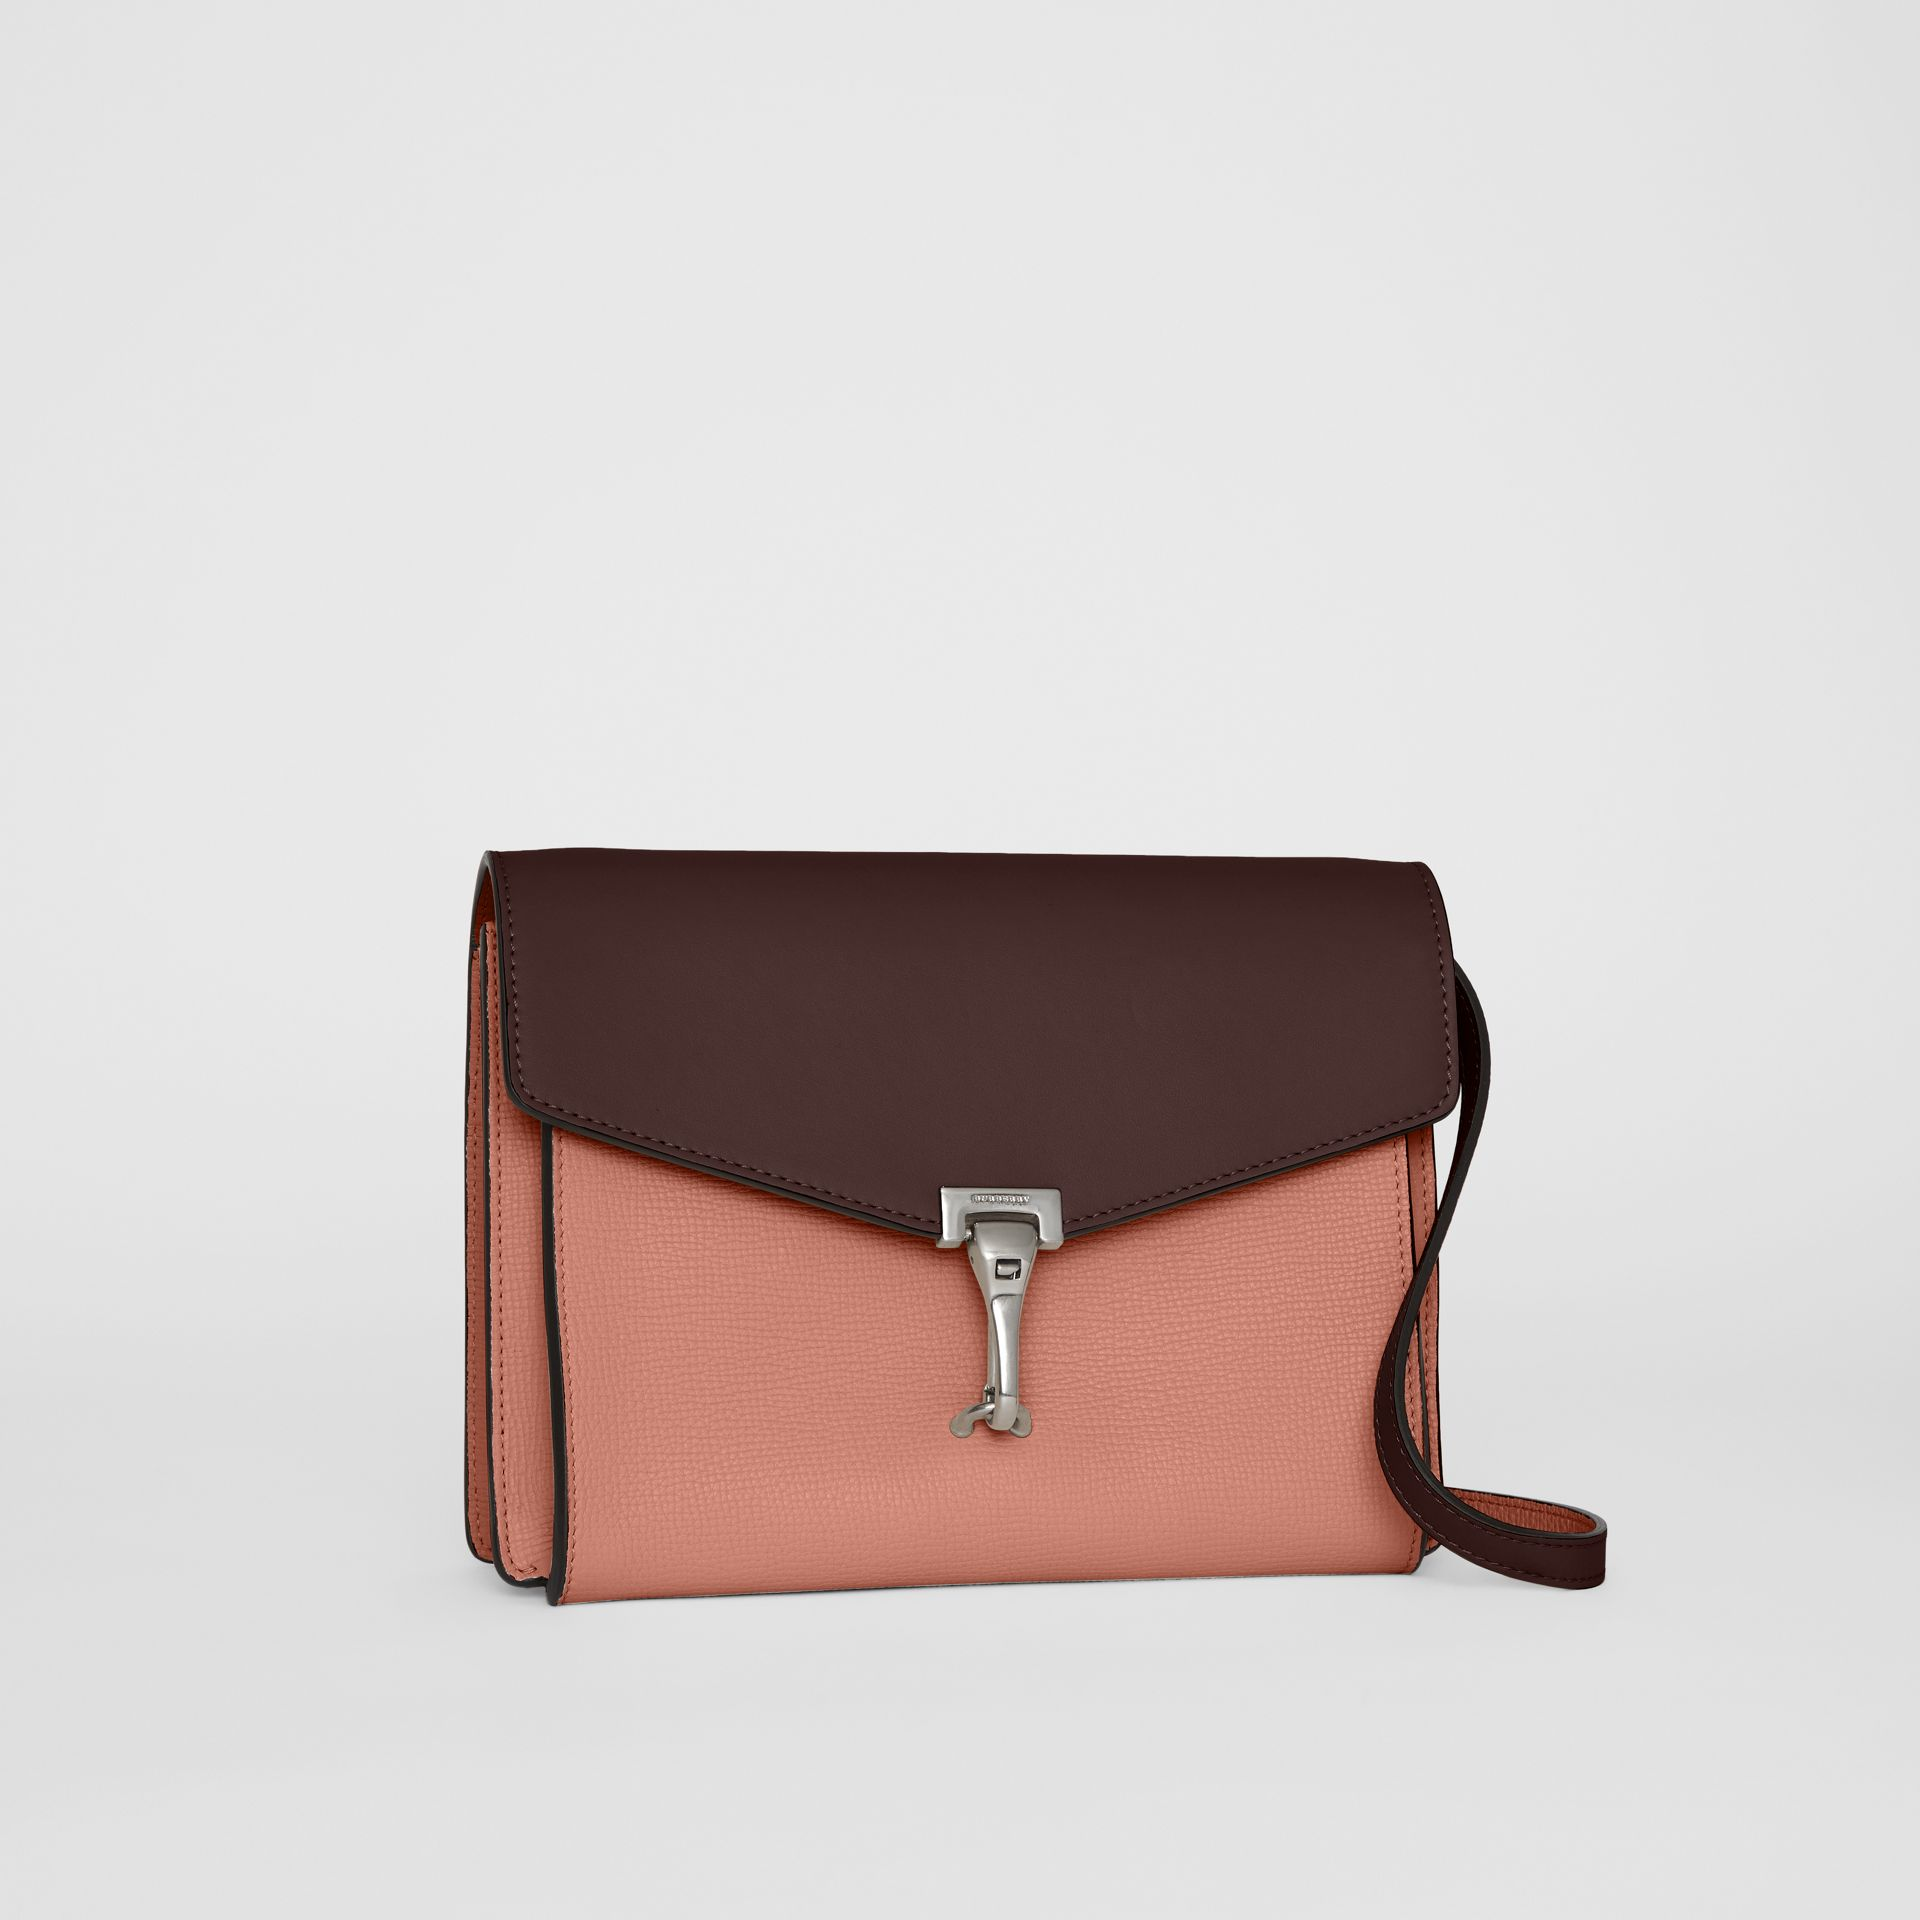 Two-tone Leather Crossbody Bag in Dusty Rose/deep Claret - Women | Burberry - gallery image 5